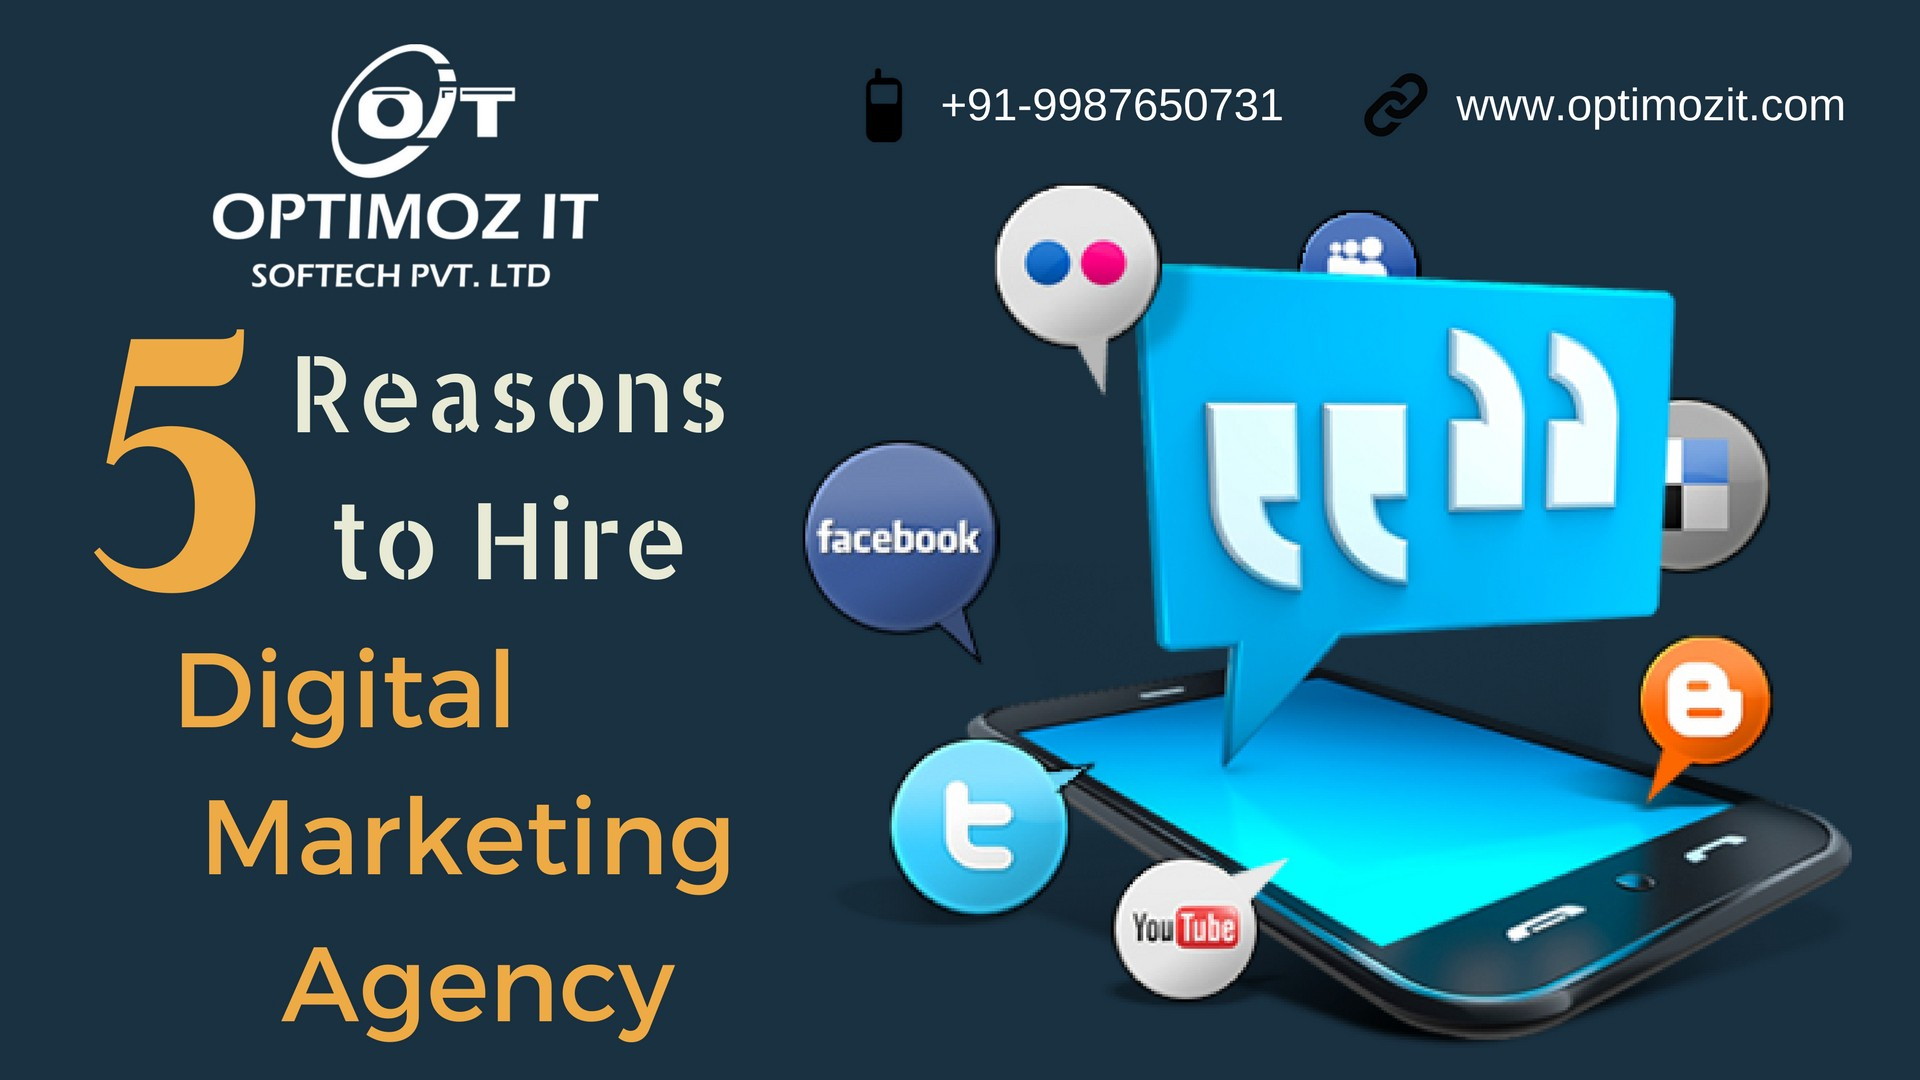 5 Reasons to Hire Digital Marketing Agency - Optimoz IT - Medium